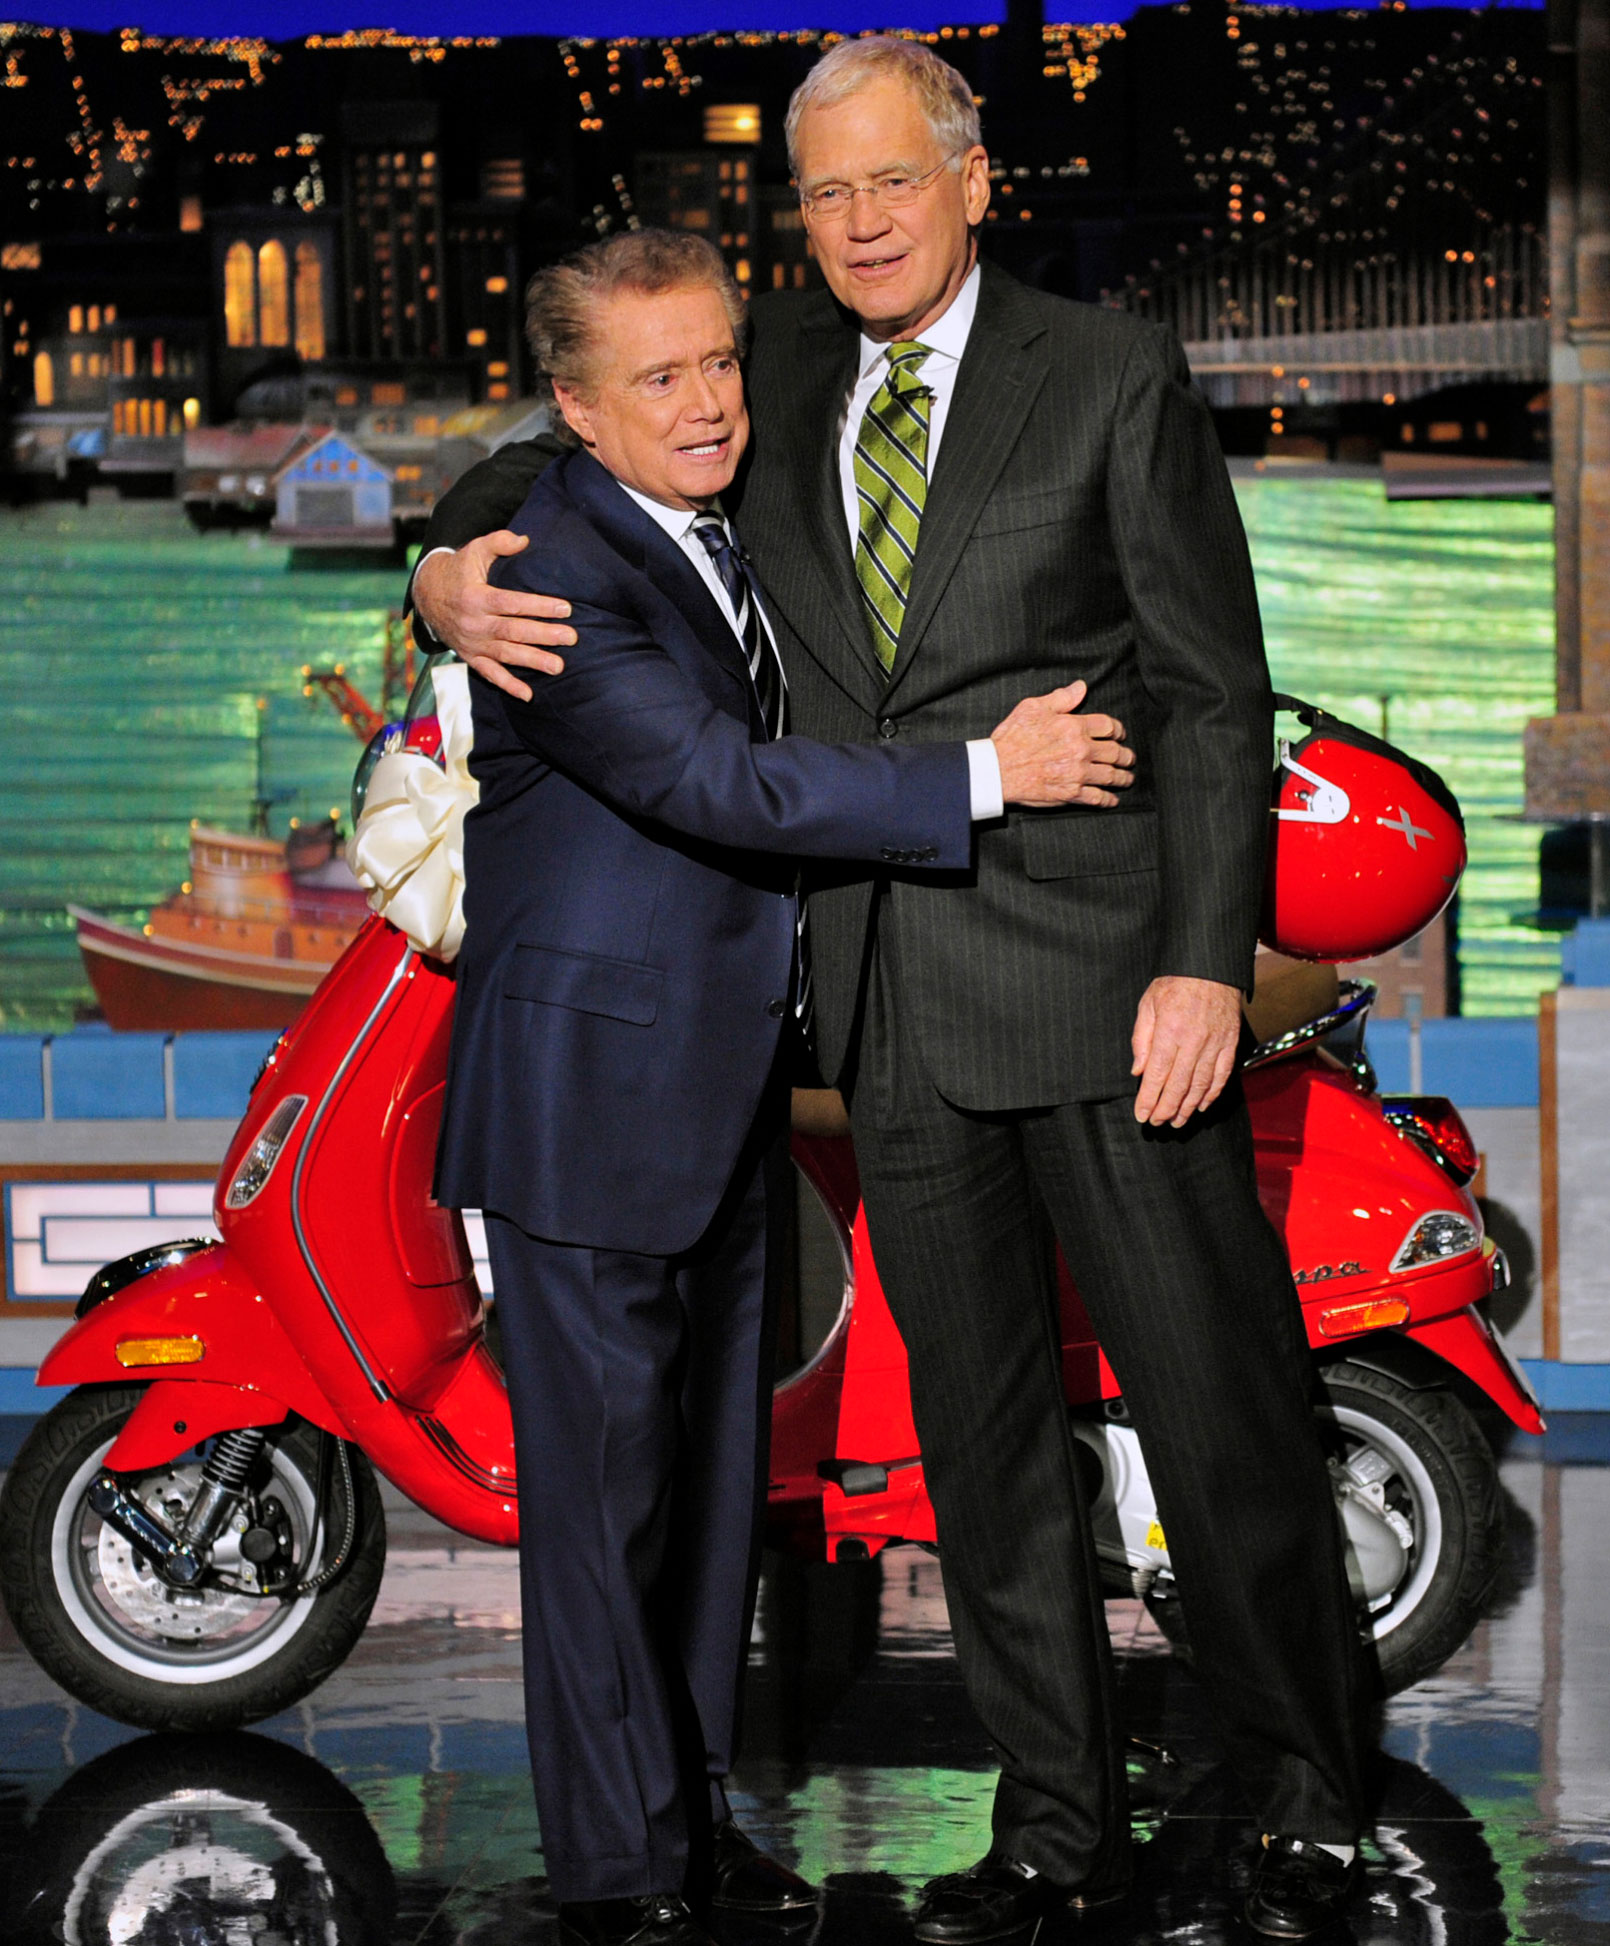 David Letterman, Regis Philbin